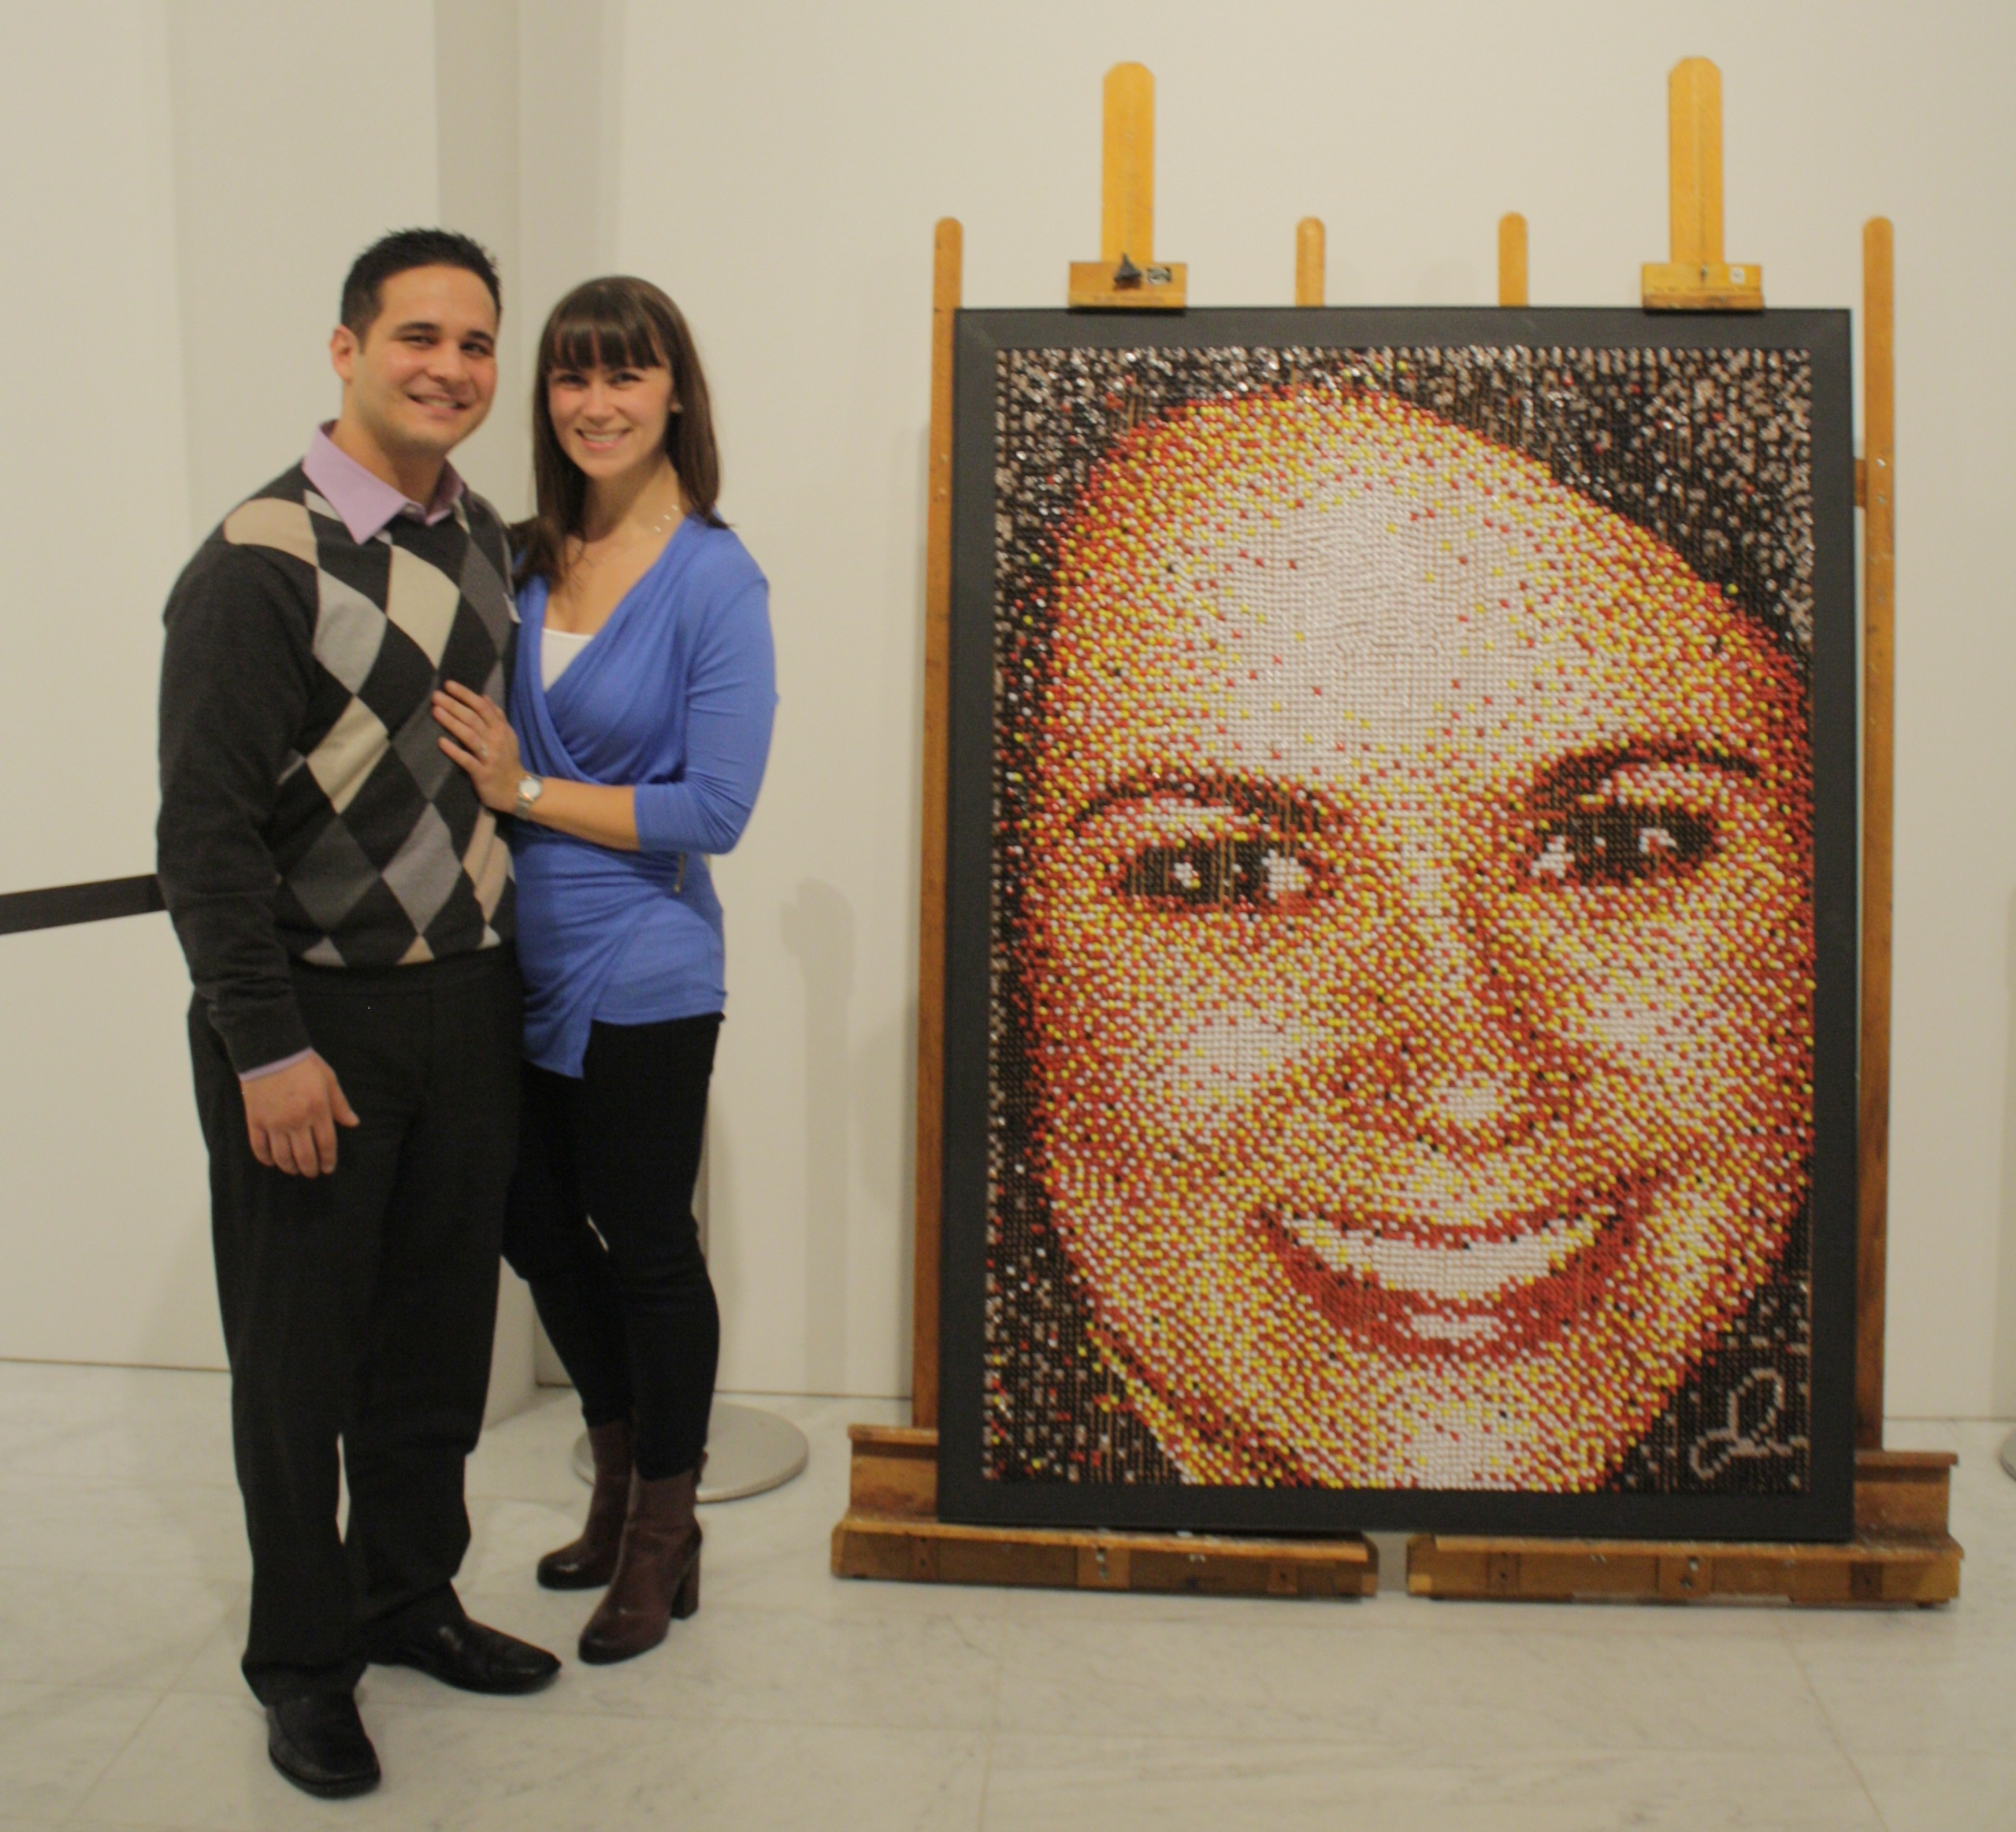 Image 1 of Push Pin Portrait Marriage Proposal